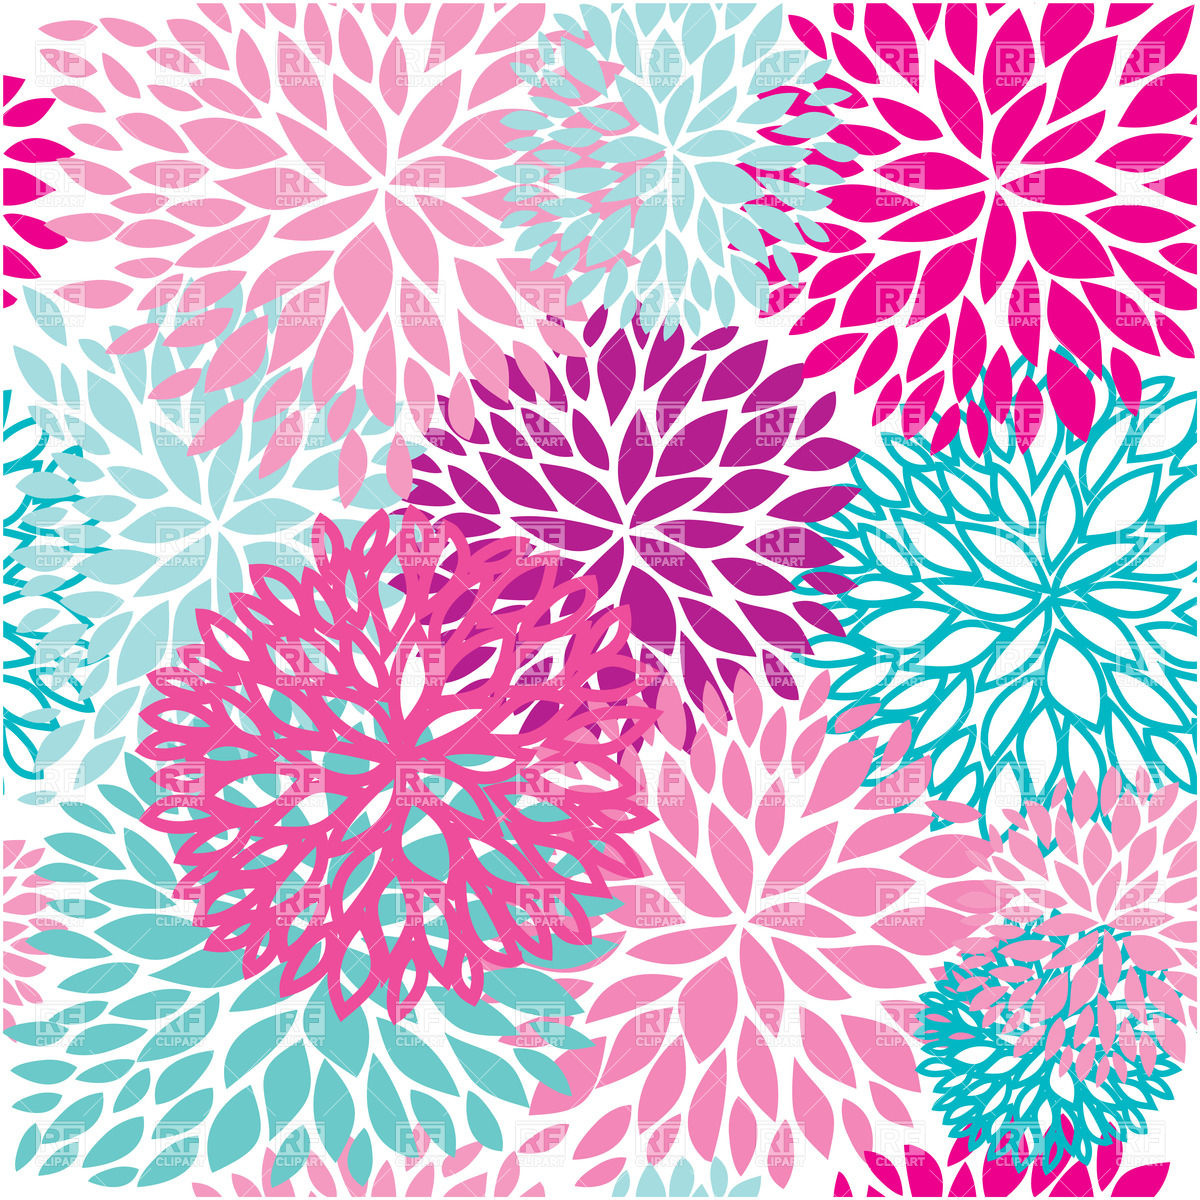 Background Patterns Clipart - Clipart Kid